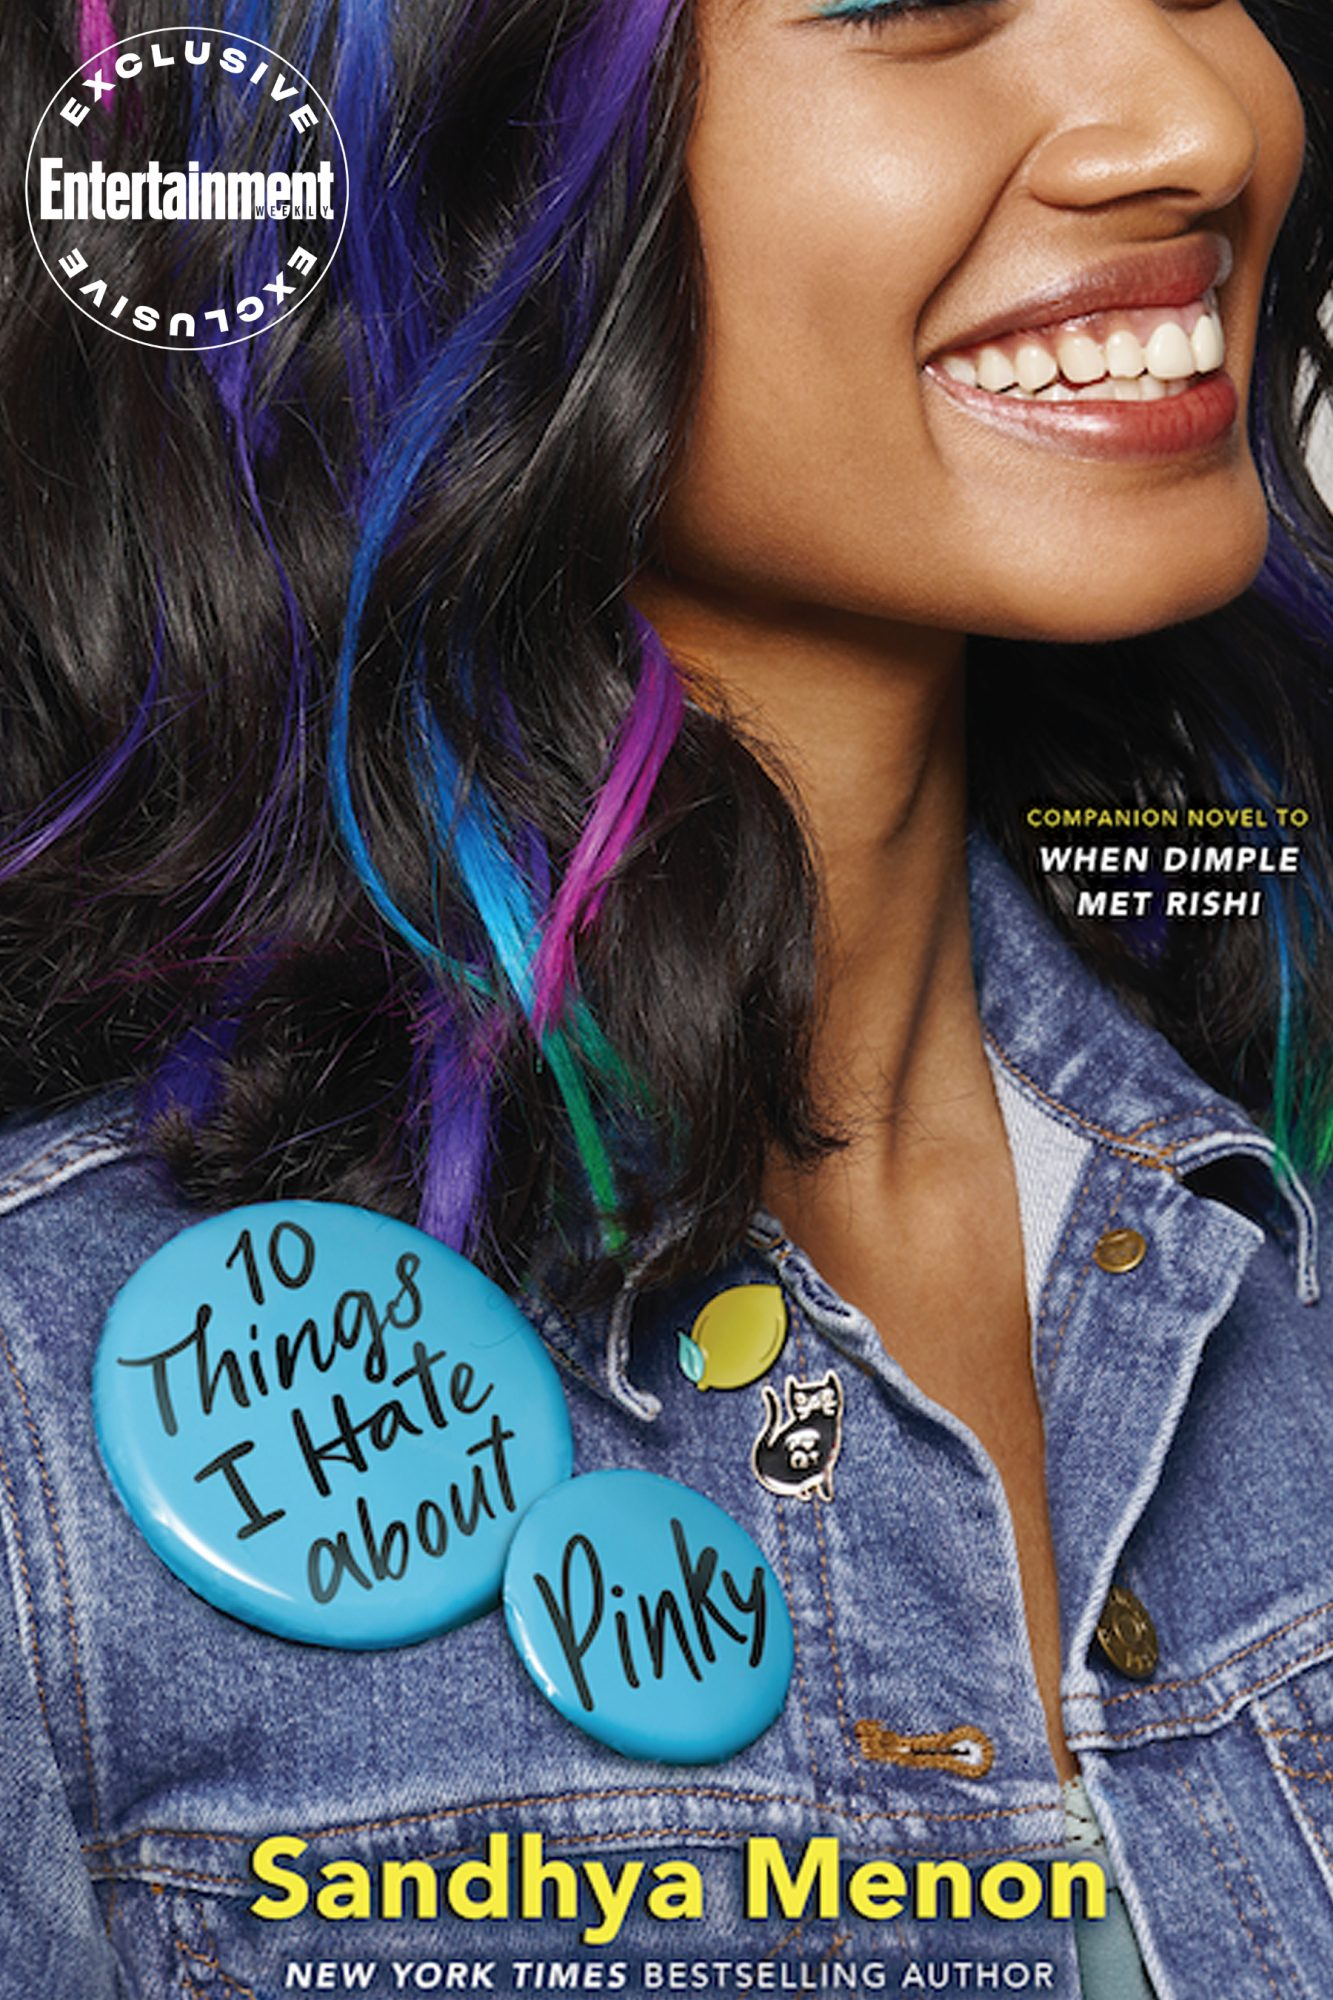 10 Things I Hate About Pinky cover reveal